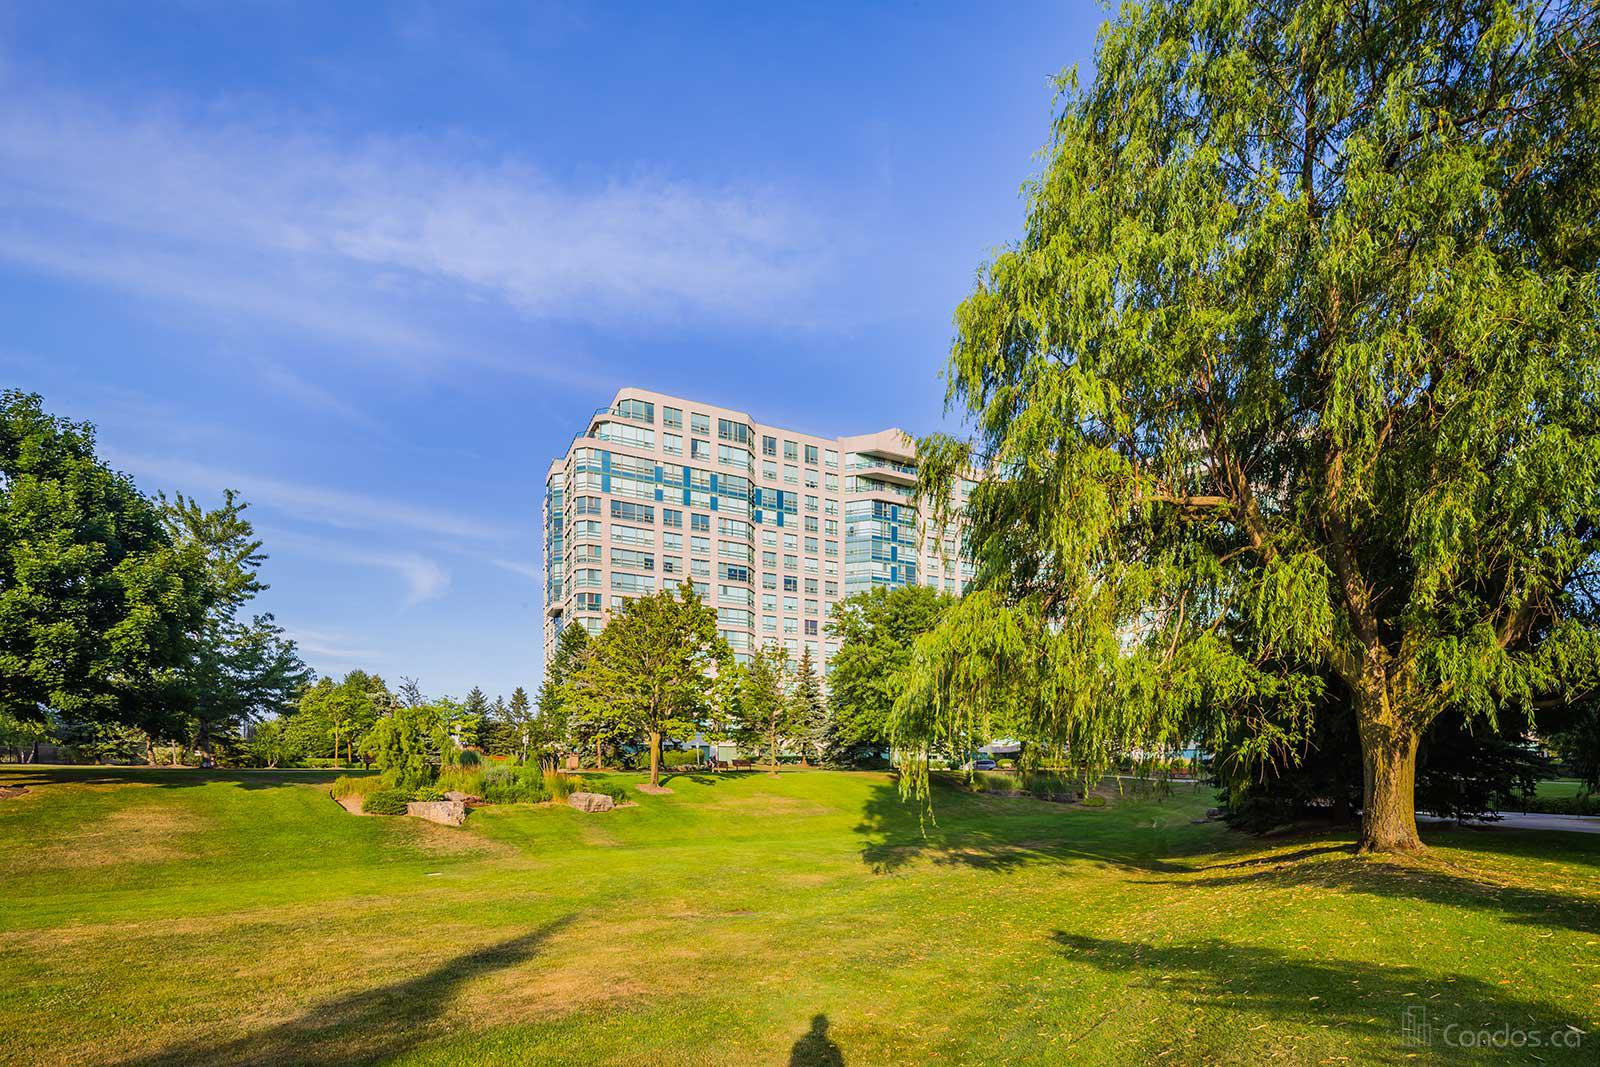 The Landmark of Thornhill at 7805 Bayview Ave, Markham 1